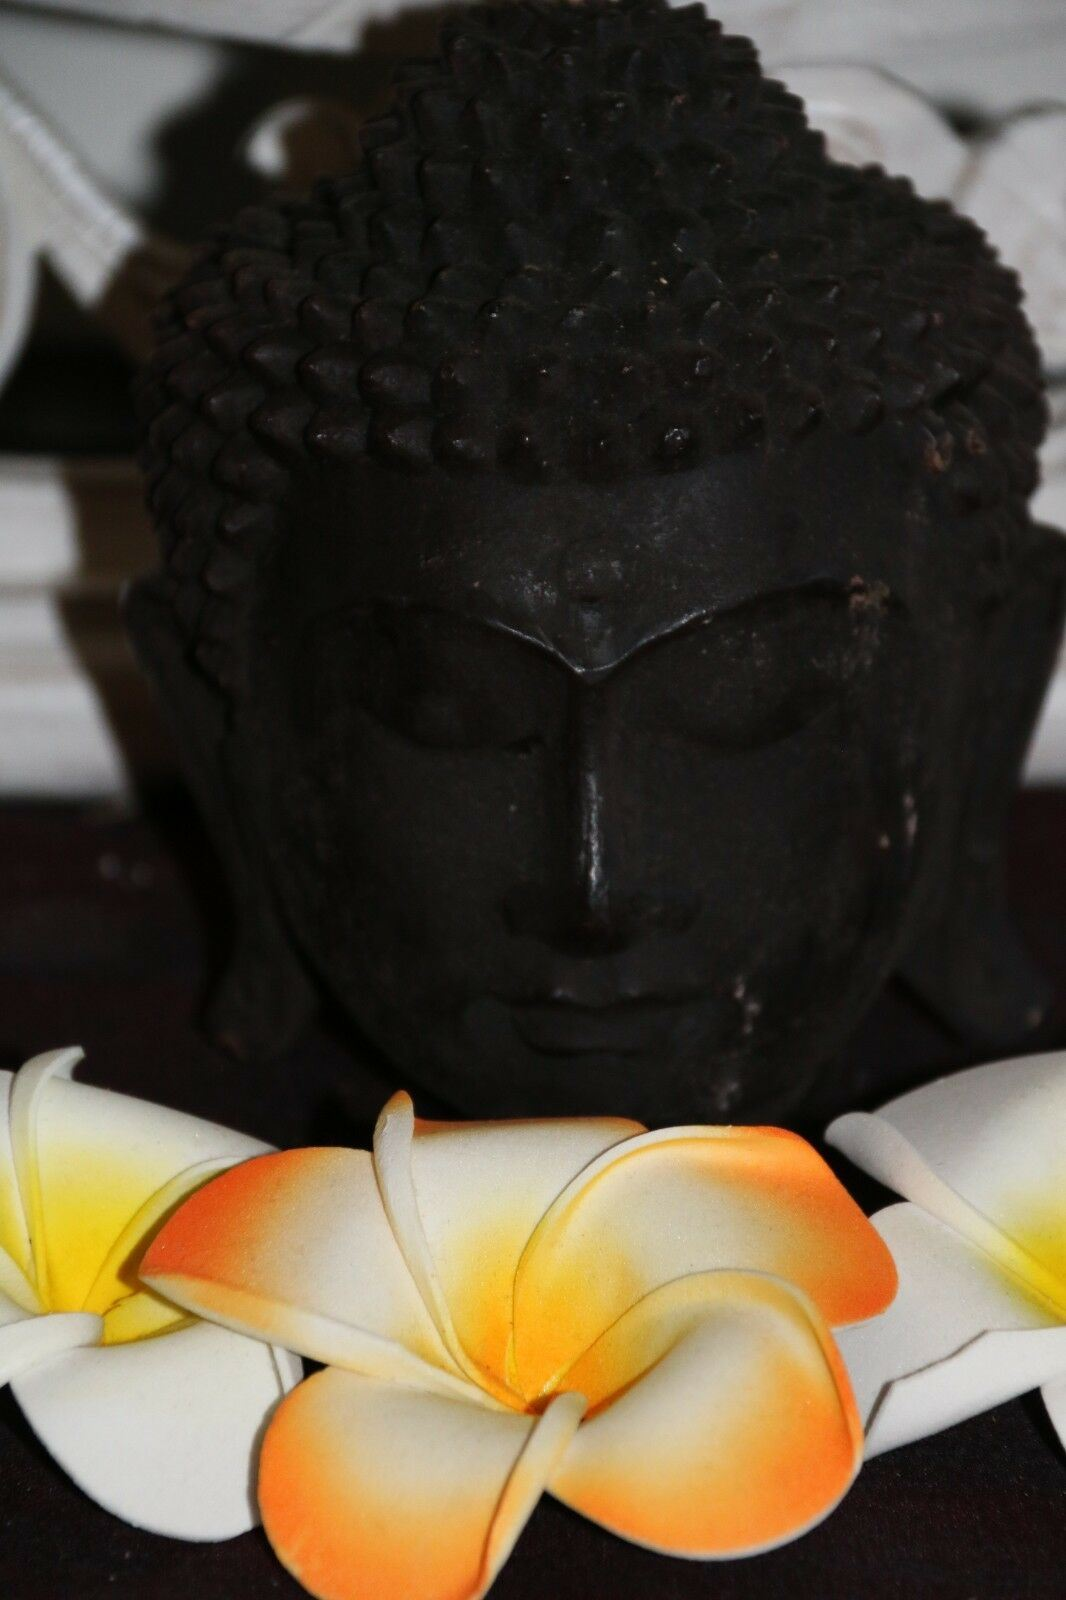 NEW Balinese Buddha Head Candle - Bali Inspired Candle PRICE REDUCED!!